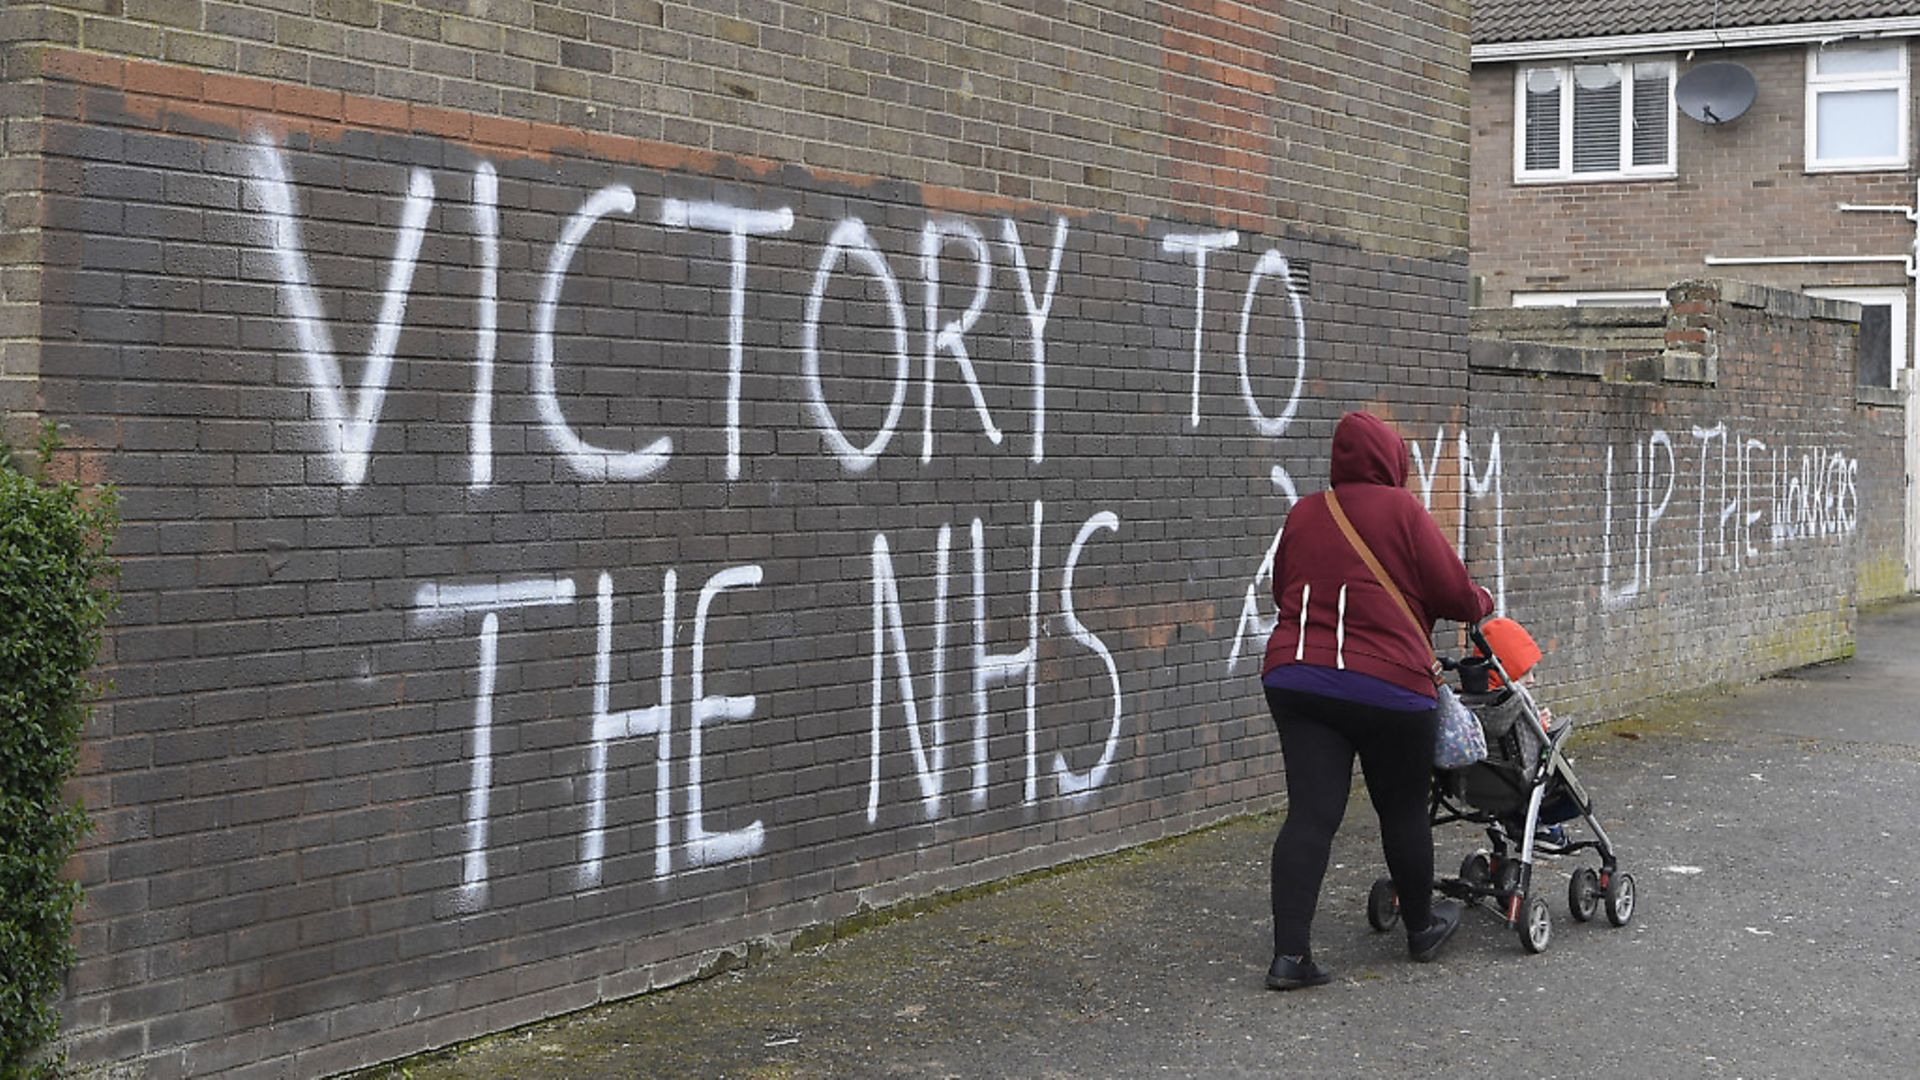 A woman walks past a message of support for the NHS in Londonderry, as the UK continues in lockdown to help curb the spread of the coronavirus. PA Photo. Picture date: Tuesday March 31, 2020. A total of 1,408 patients have died after testing positive for coronavirus in the UK as of 5pm on Sunday. See PA story HEALTH Coronavirus. Photo credit should read: Michael Cooper/PA Wire - Credit: PA